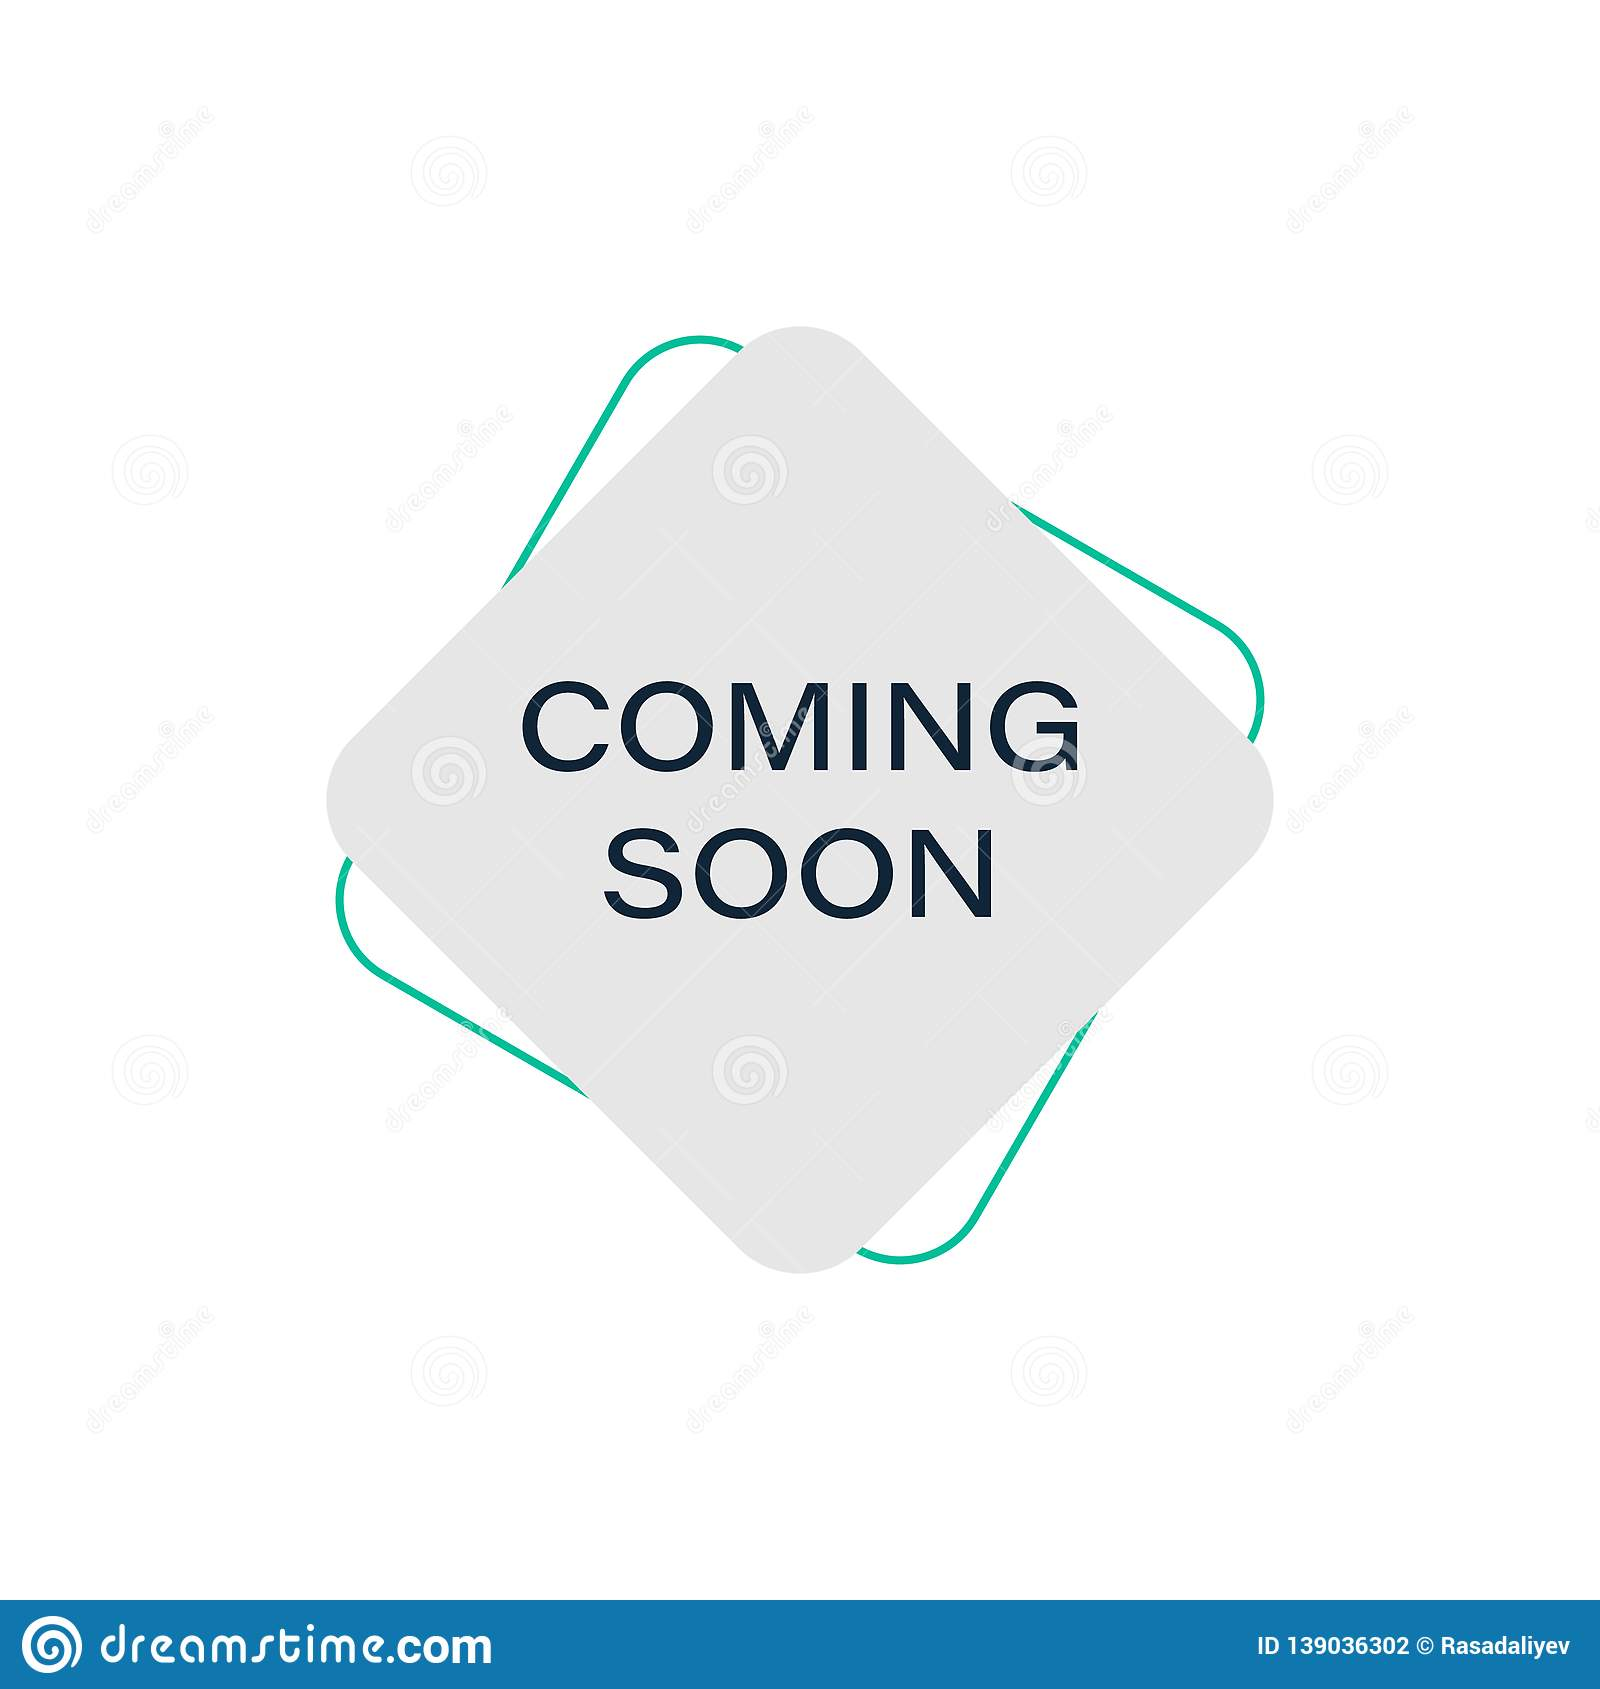 Color Tag Coming Soon Icon Element Of Discount Tag Premium Quality Graphic Design Icon Signs And Symbols Collection Icon For Stock Illustration Illustration Of Button Advertising 139036302